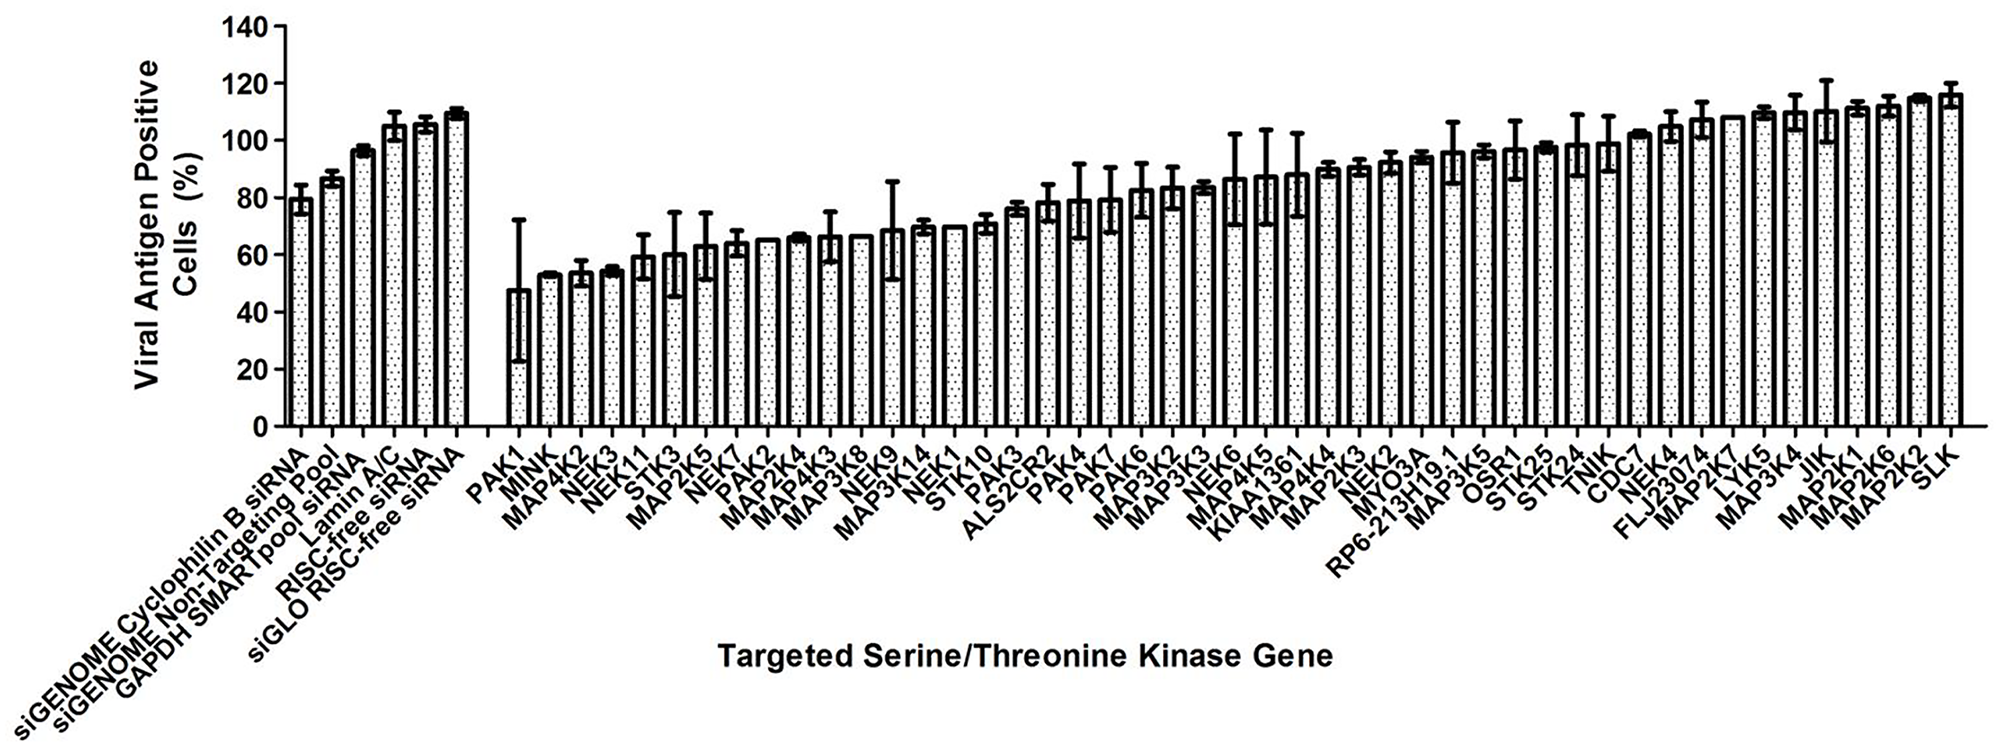 Human serine/threonine kinase siRNA library screen.